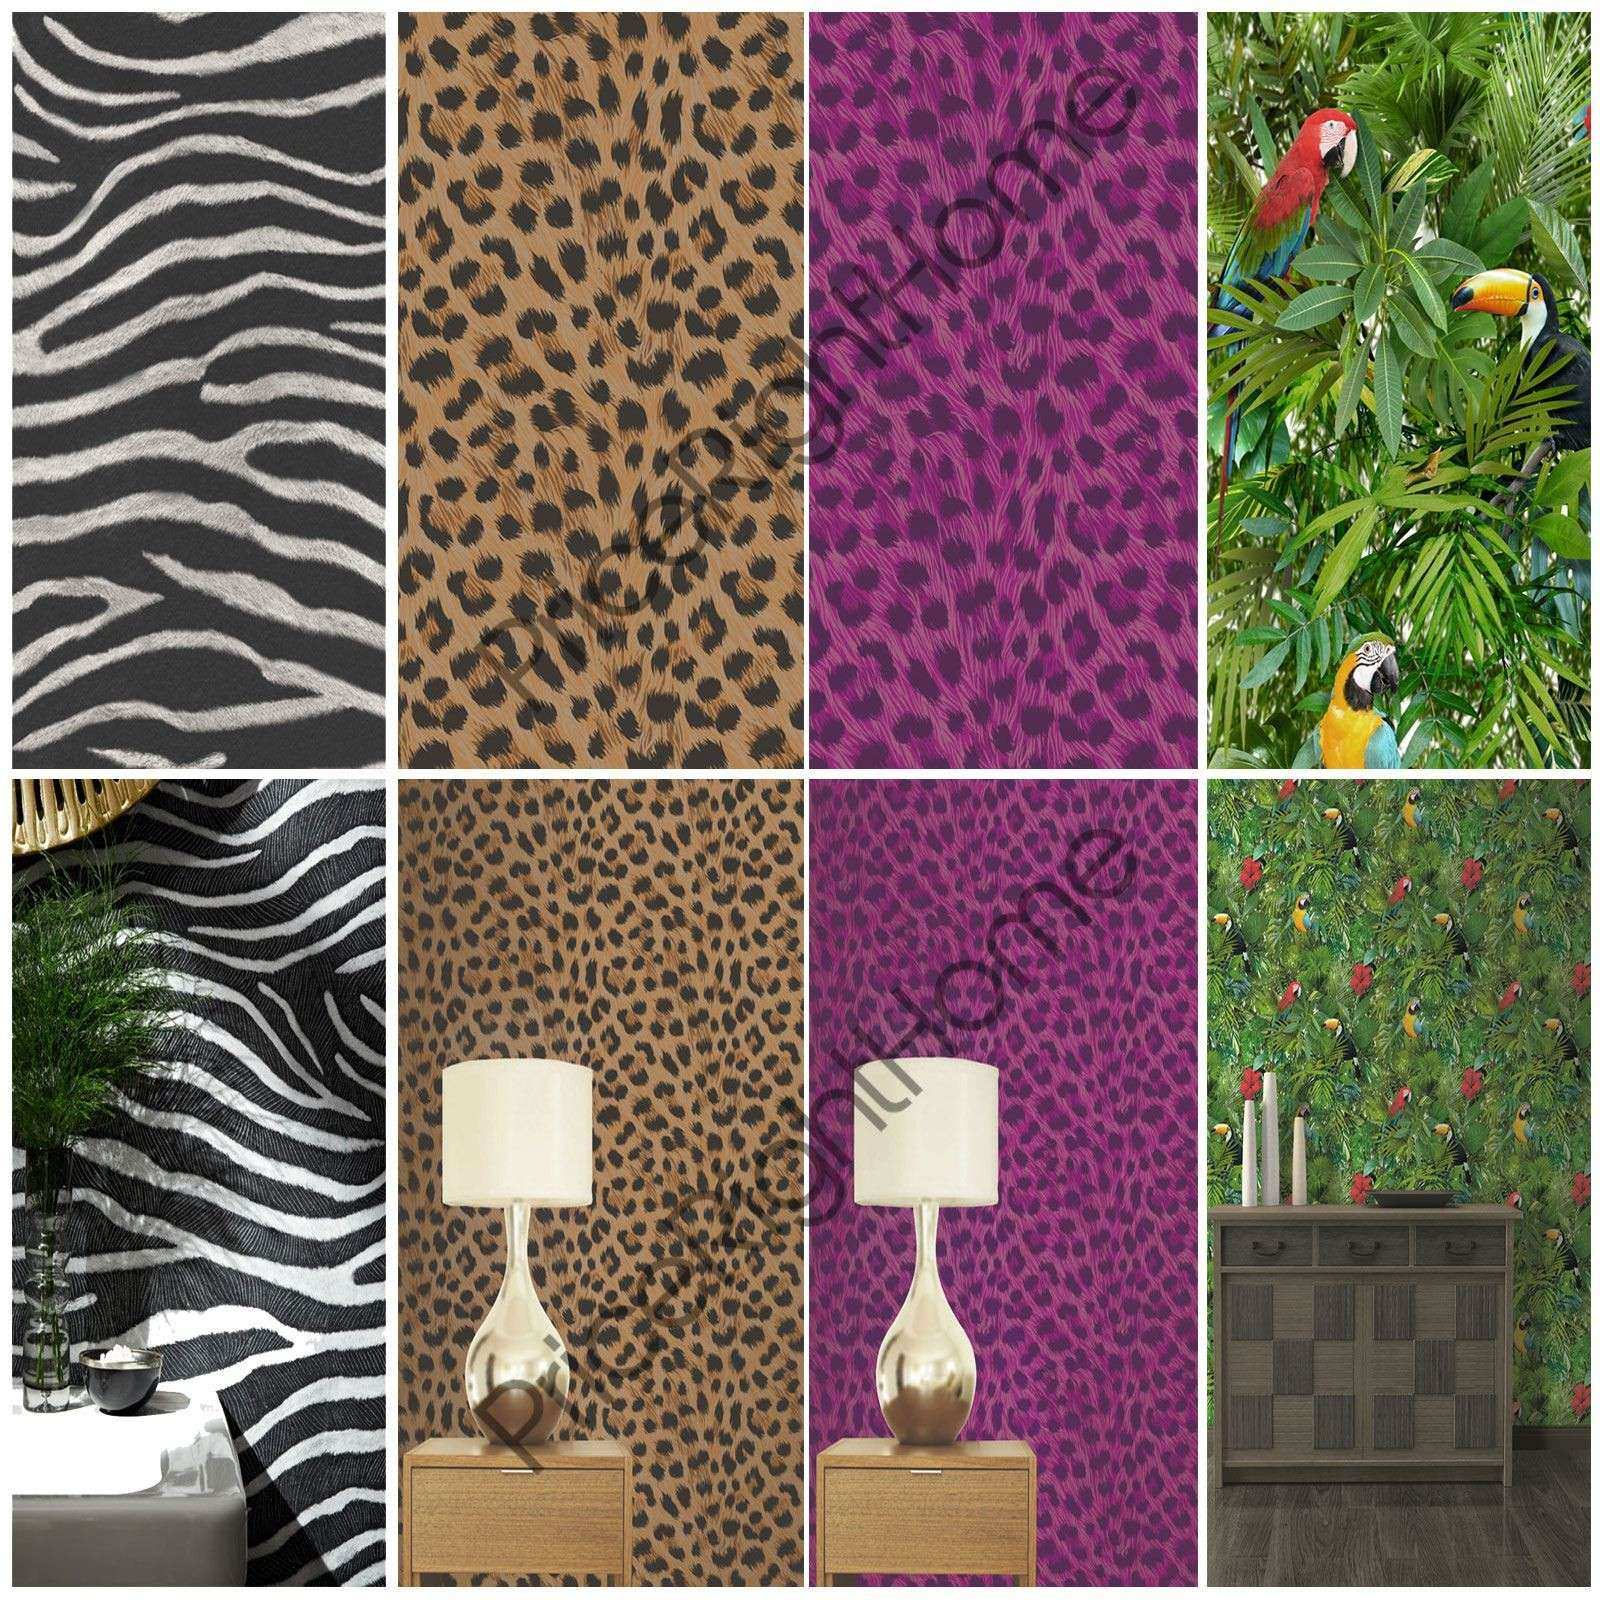 ANIMAL PRINT WALLPAPER WALL DECOR TIGER LEOPARD ZEBRA SNAKE SKIN